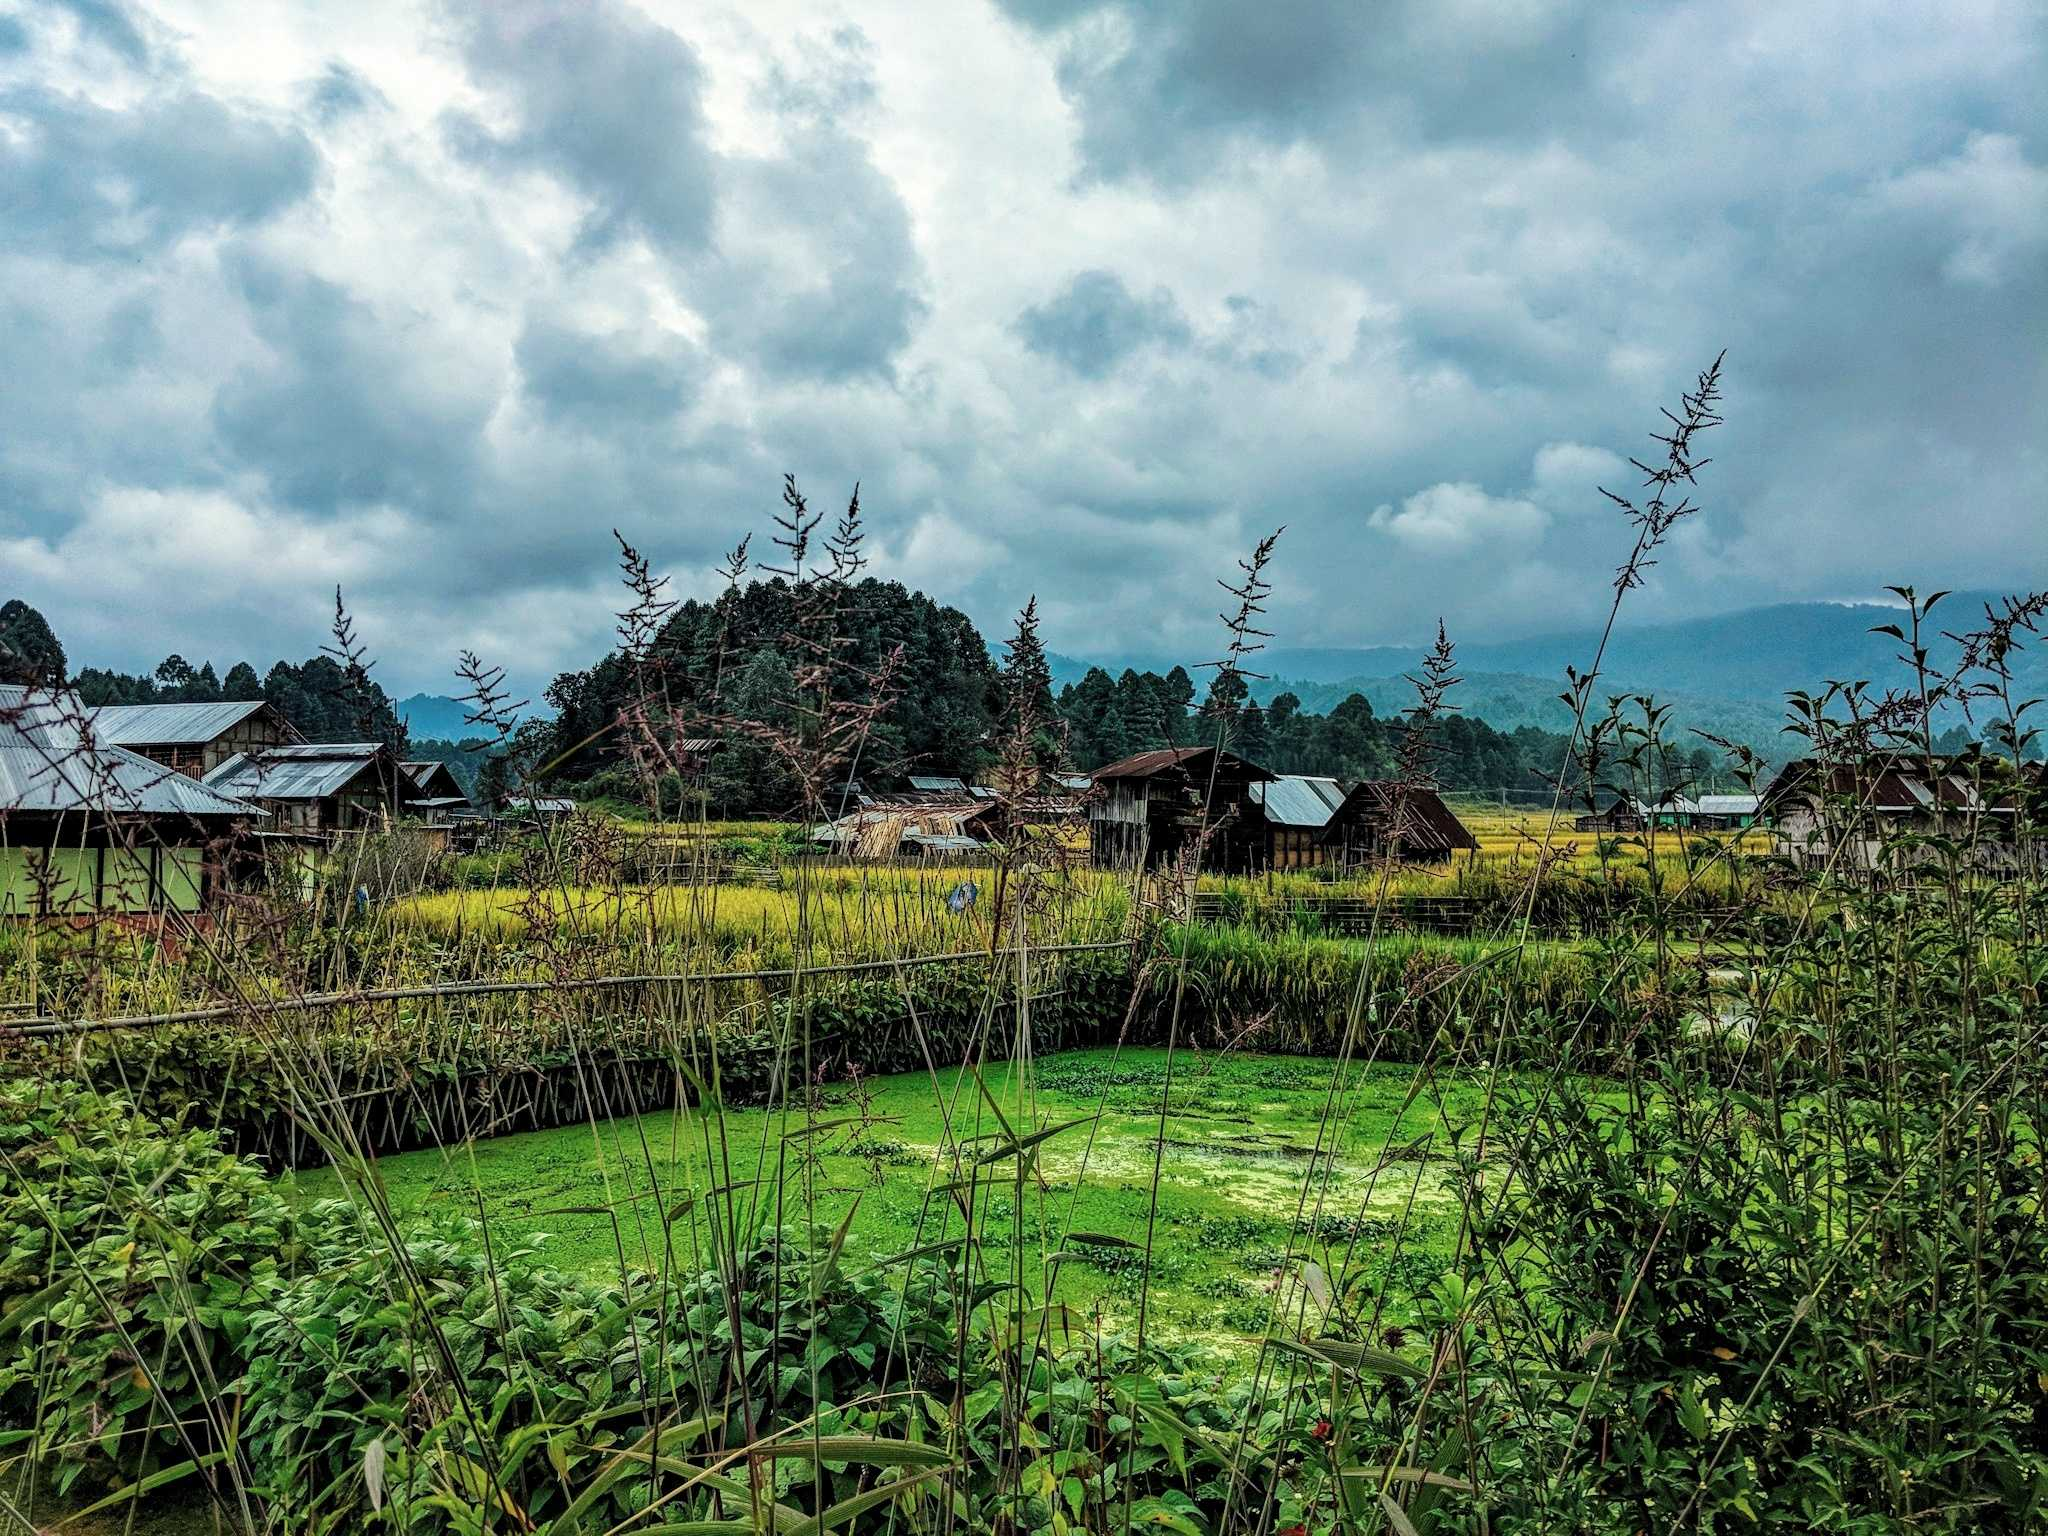 What do farm houses in Northeast India look like?